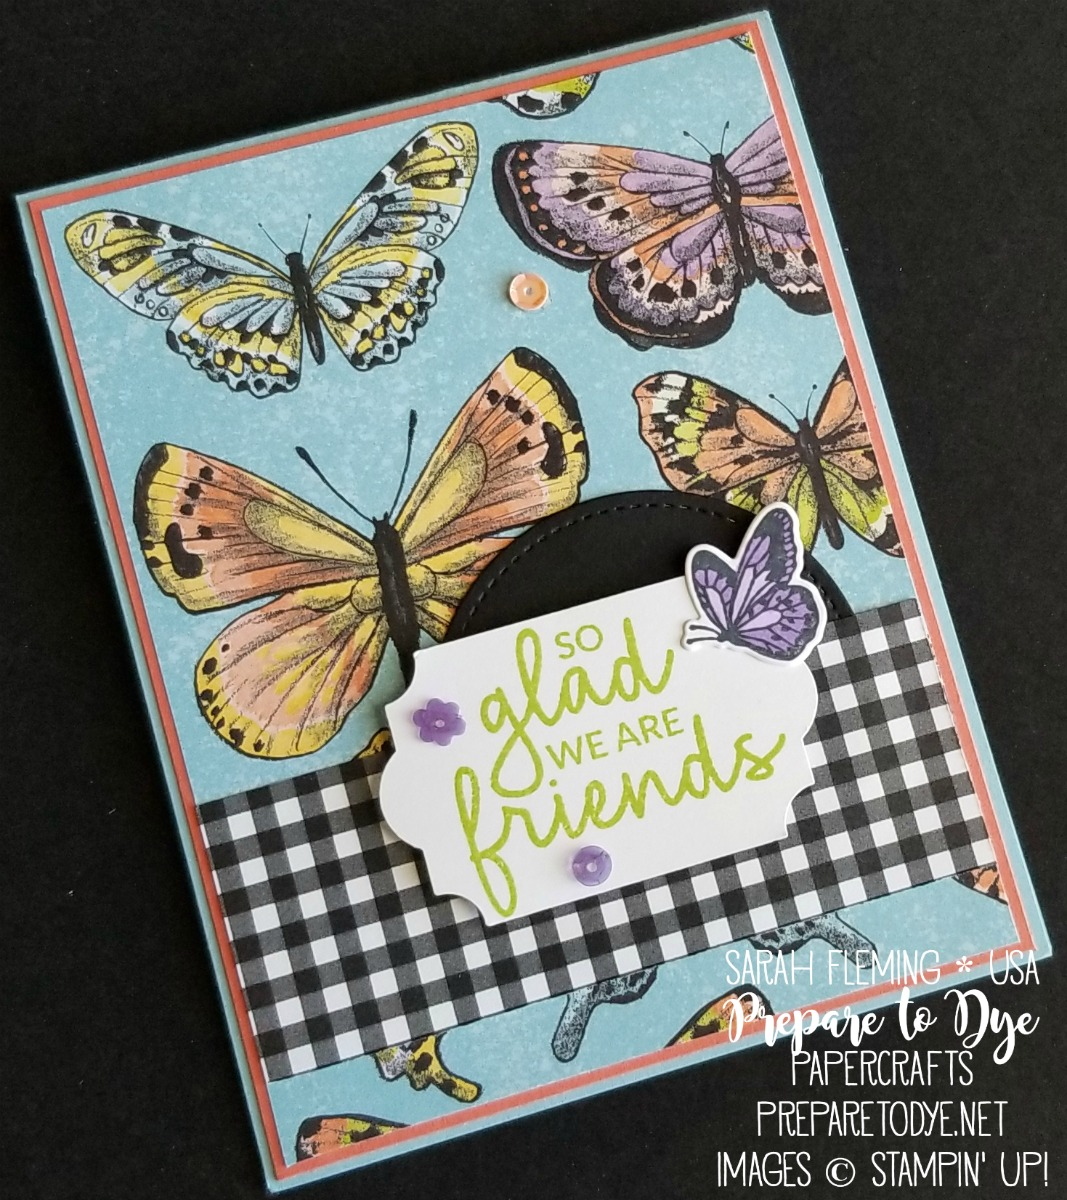 Stampin' Up! handmade friendship card using SNEAK PEEK OCCASIONS CATALOG AND SALE-A-BRATION PRODUCTS - Beauty Abounts bundle with Butterfly Beauty thinlits, Botanical Butterflies Sale-A-Bration freebie paper - Gingham Gala sequins - Sarah Fleming - Prepare to Dye Papercrafts